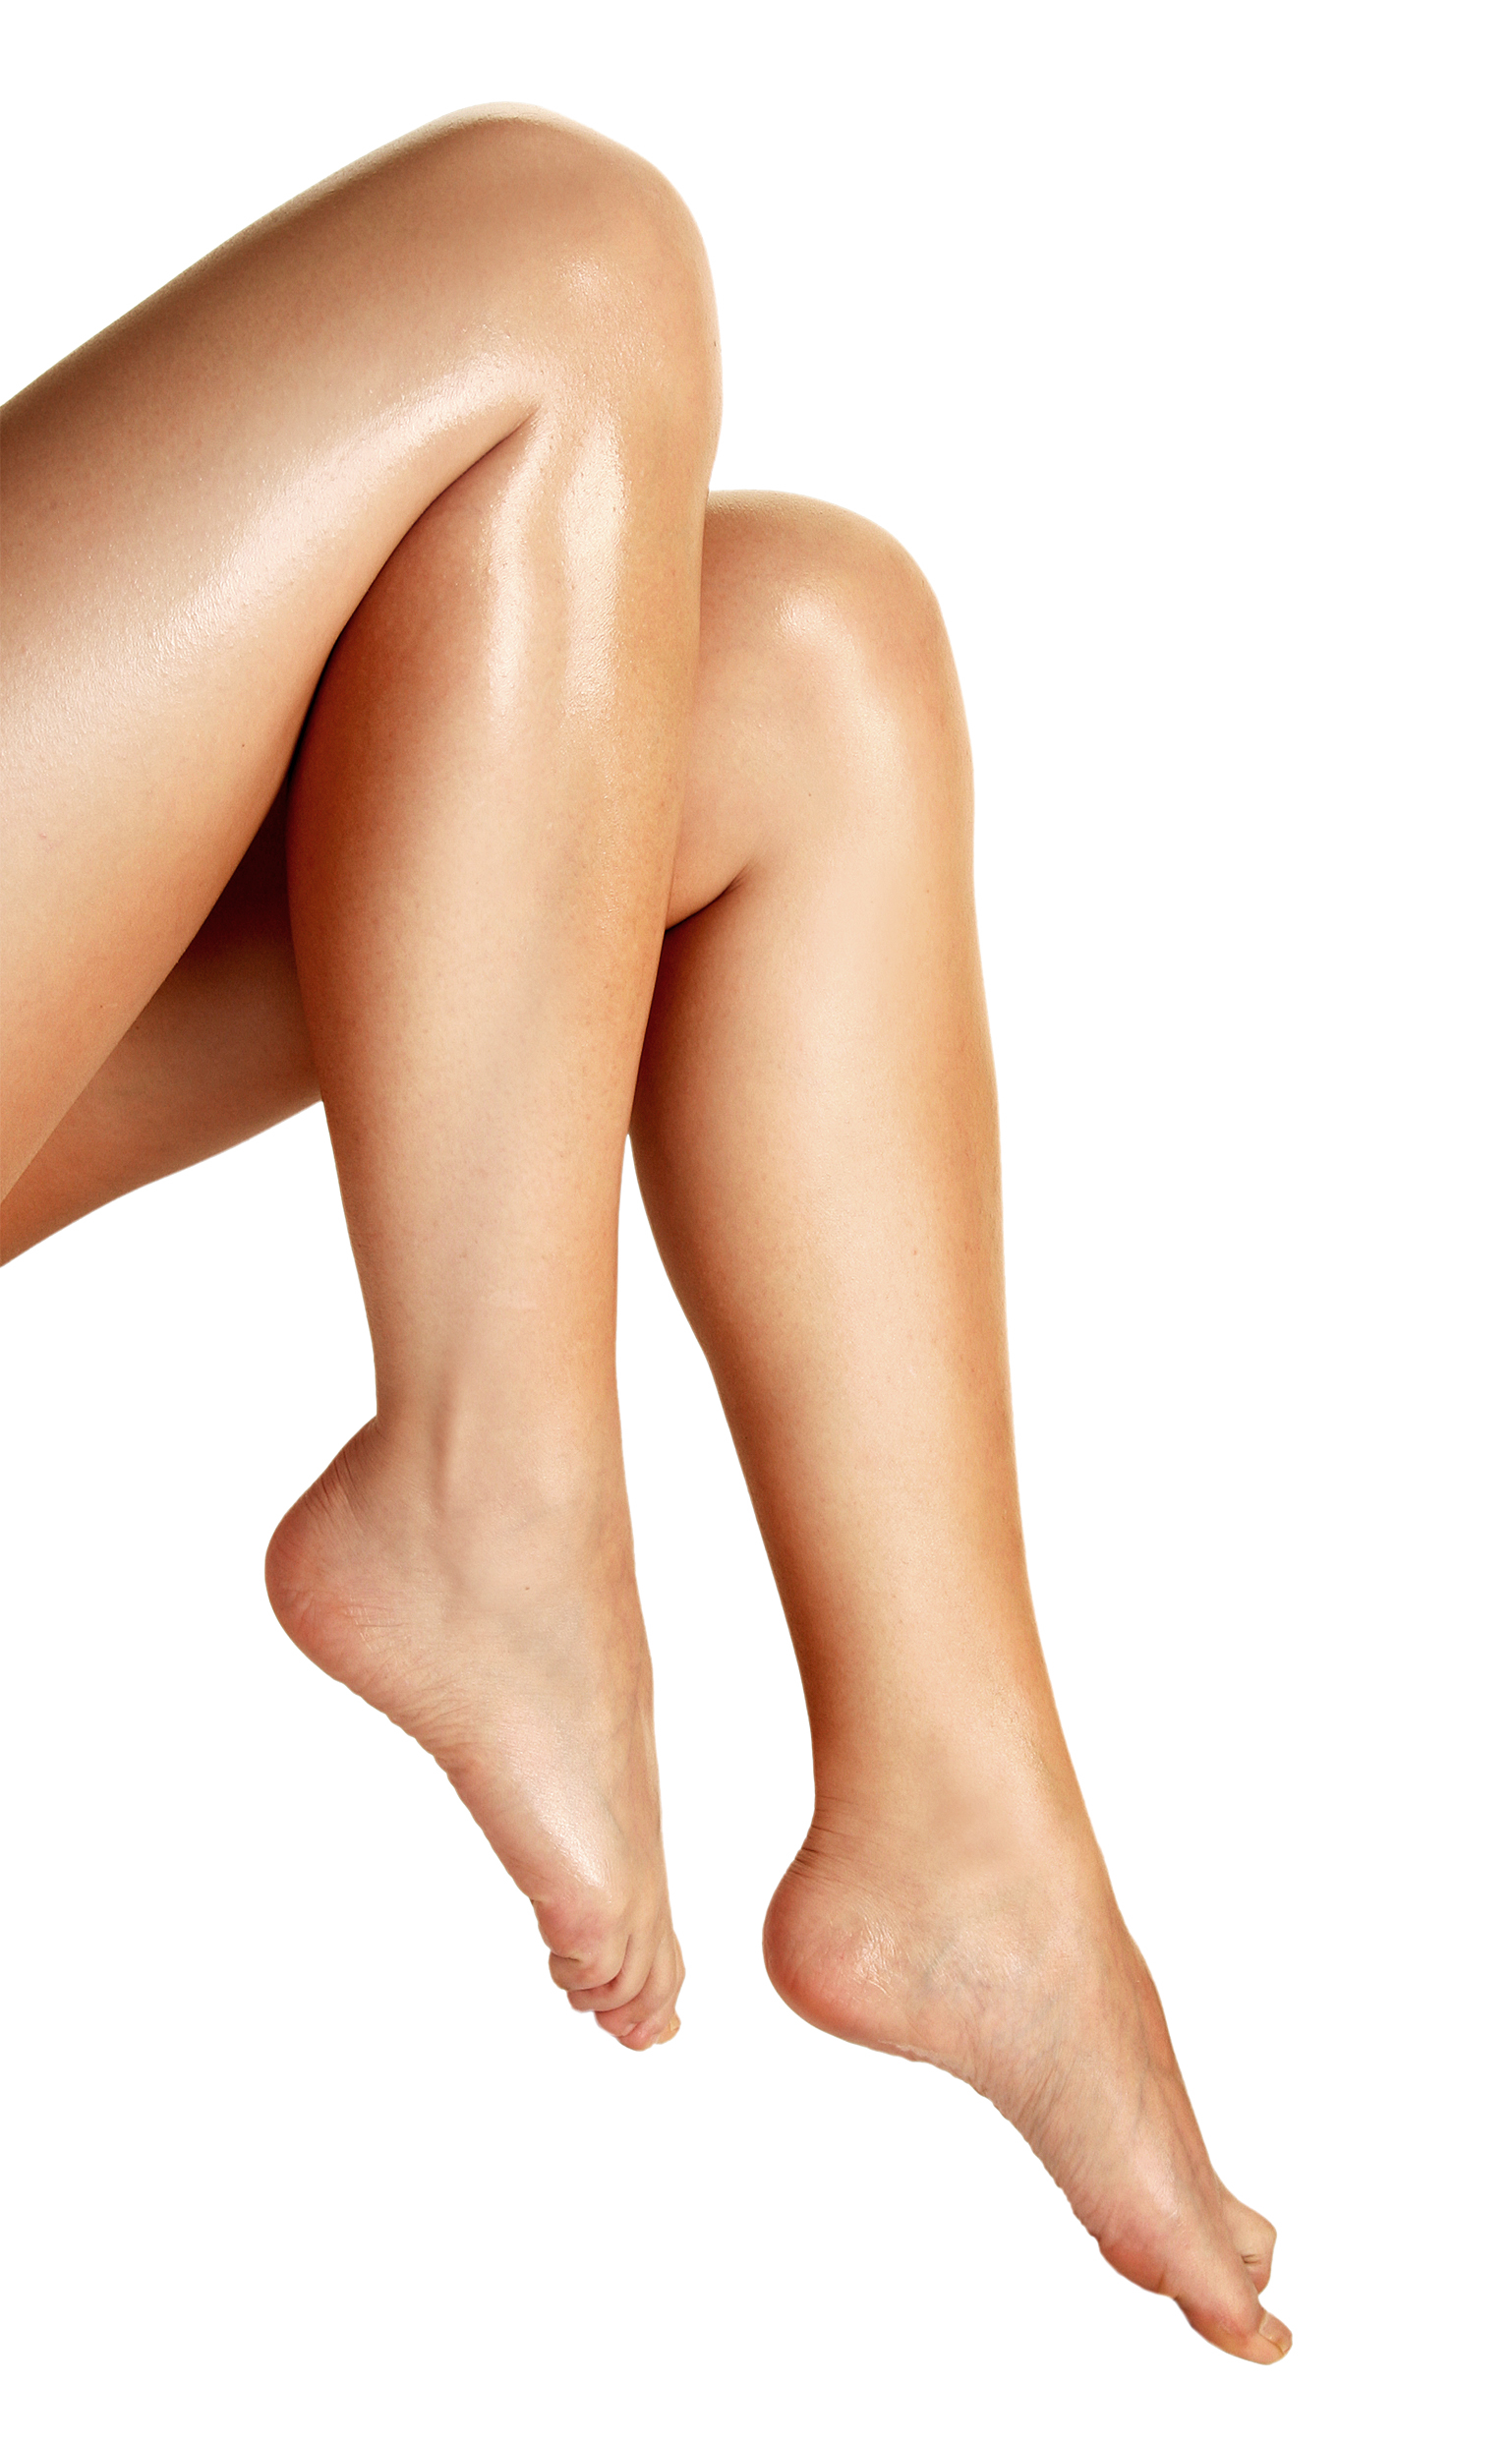 Sit clipart leg crossed. Women legs wallpapers desktop